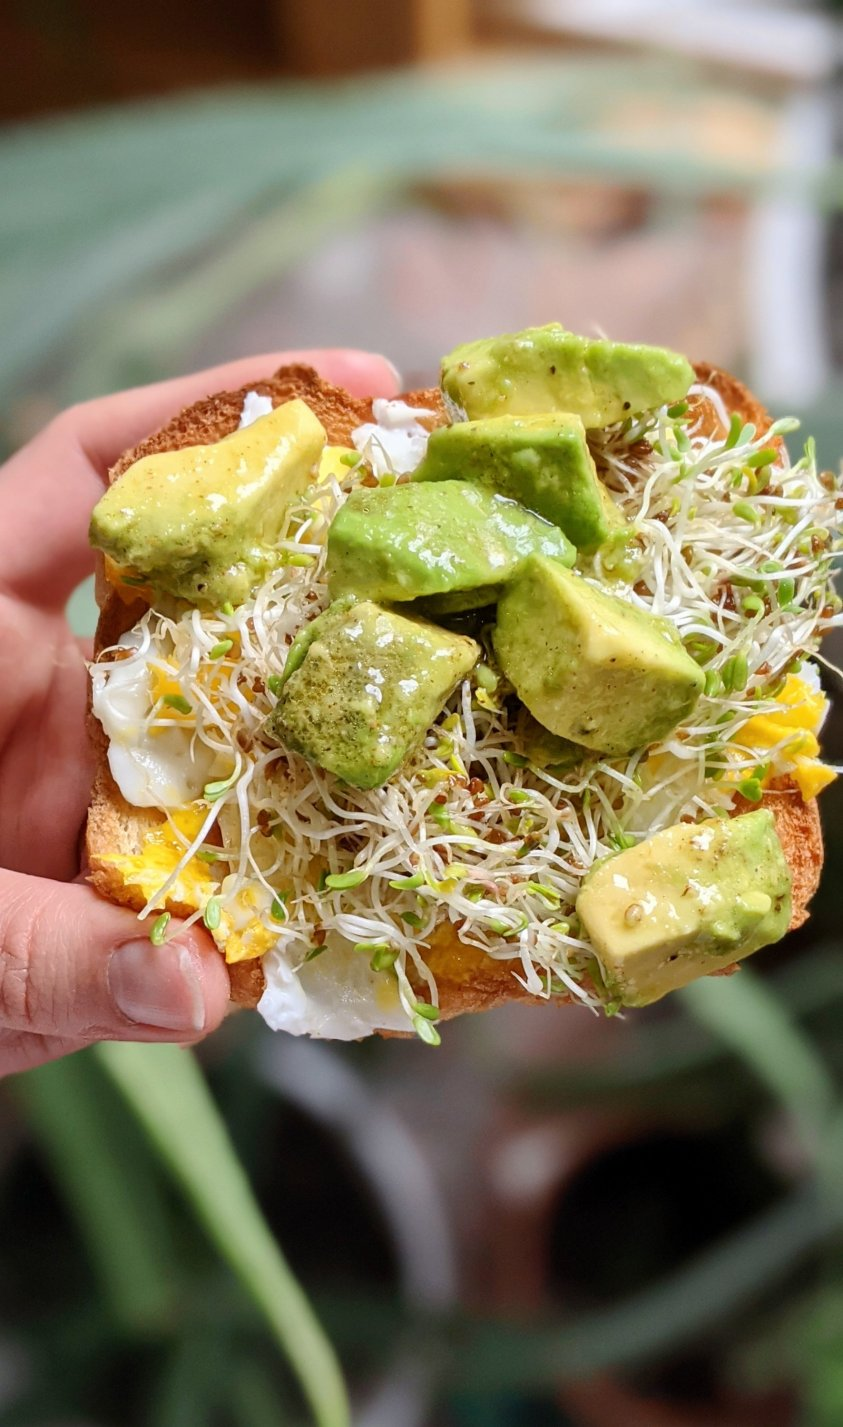 avocado salad breakfast sandwich recipe with smashed eggs and sprouts on toast with fresh marinated avocado salad for beunch recipes fancy vegan vegetarian gluten free